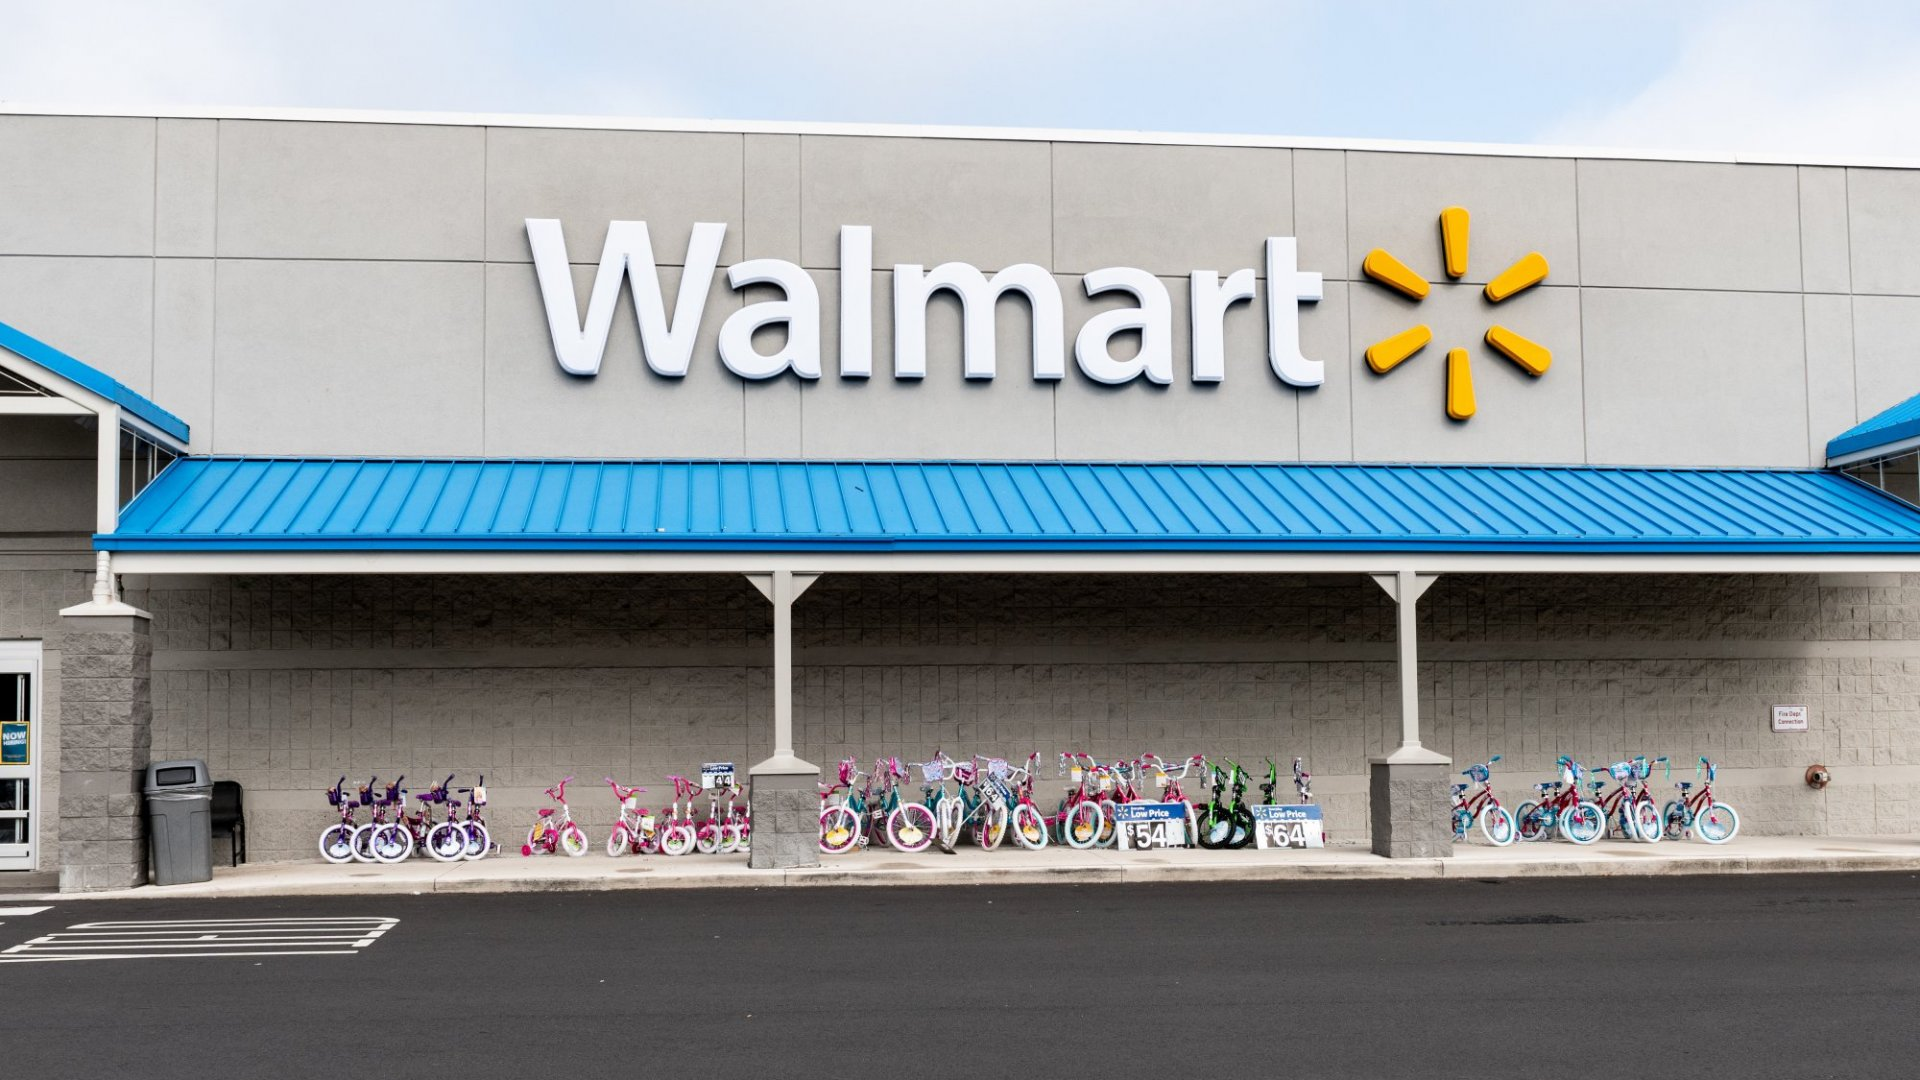 Walmart Just Made a Huge Announcement. Here's the Key Thing Everyone Missed